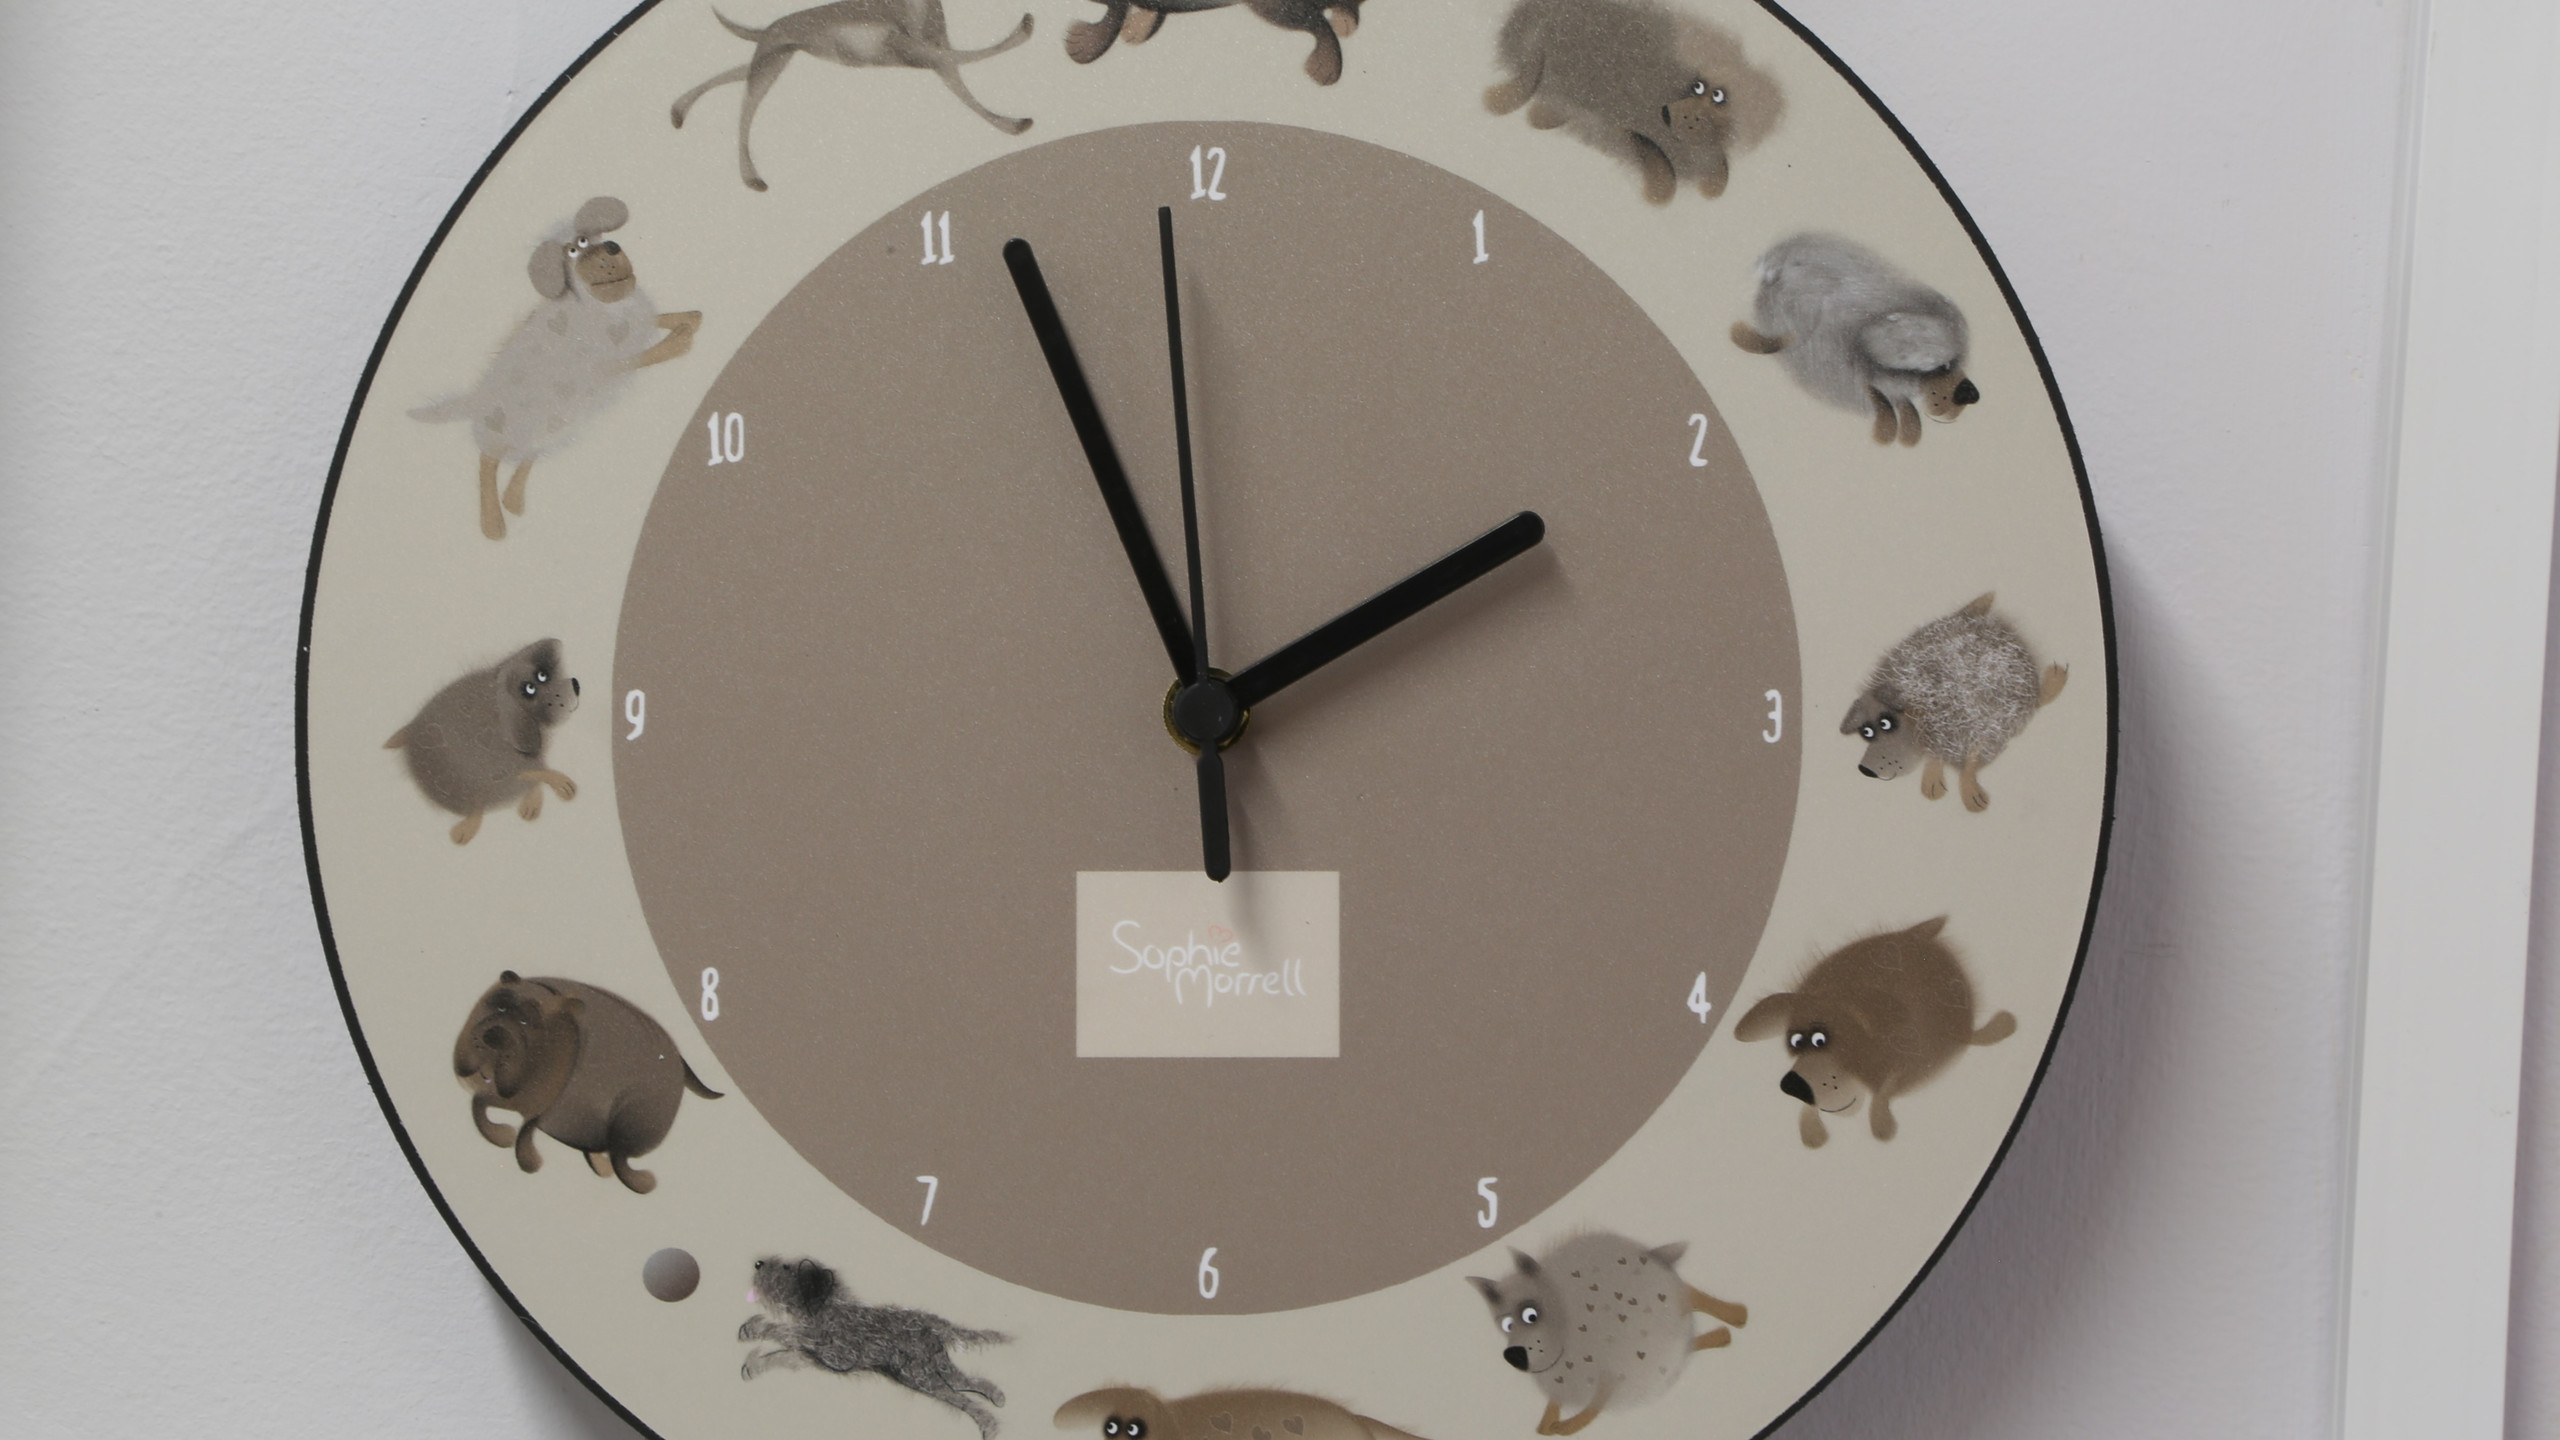 Doggy clock